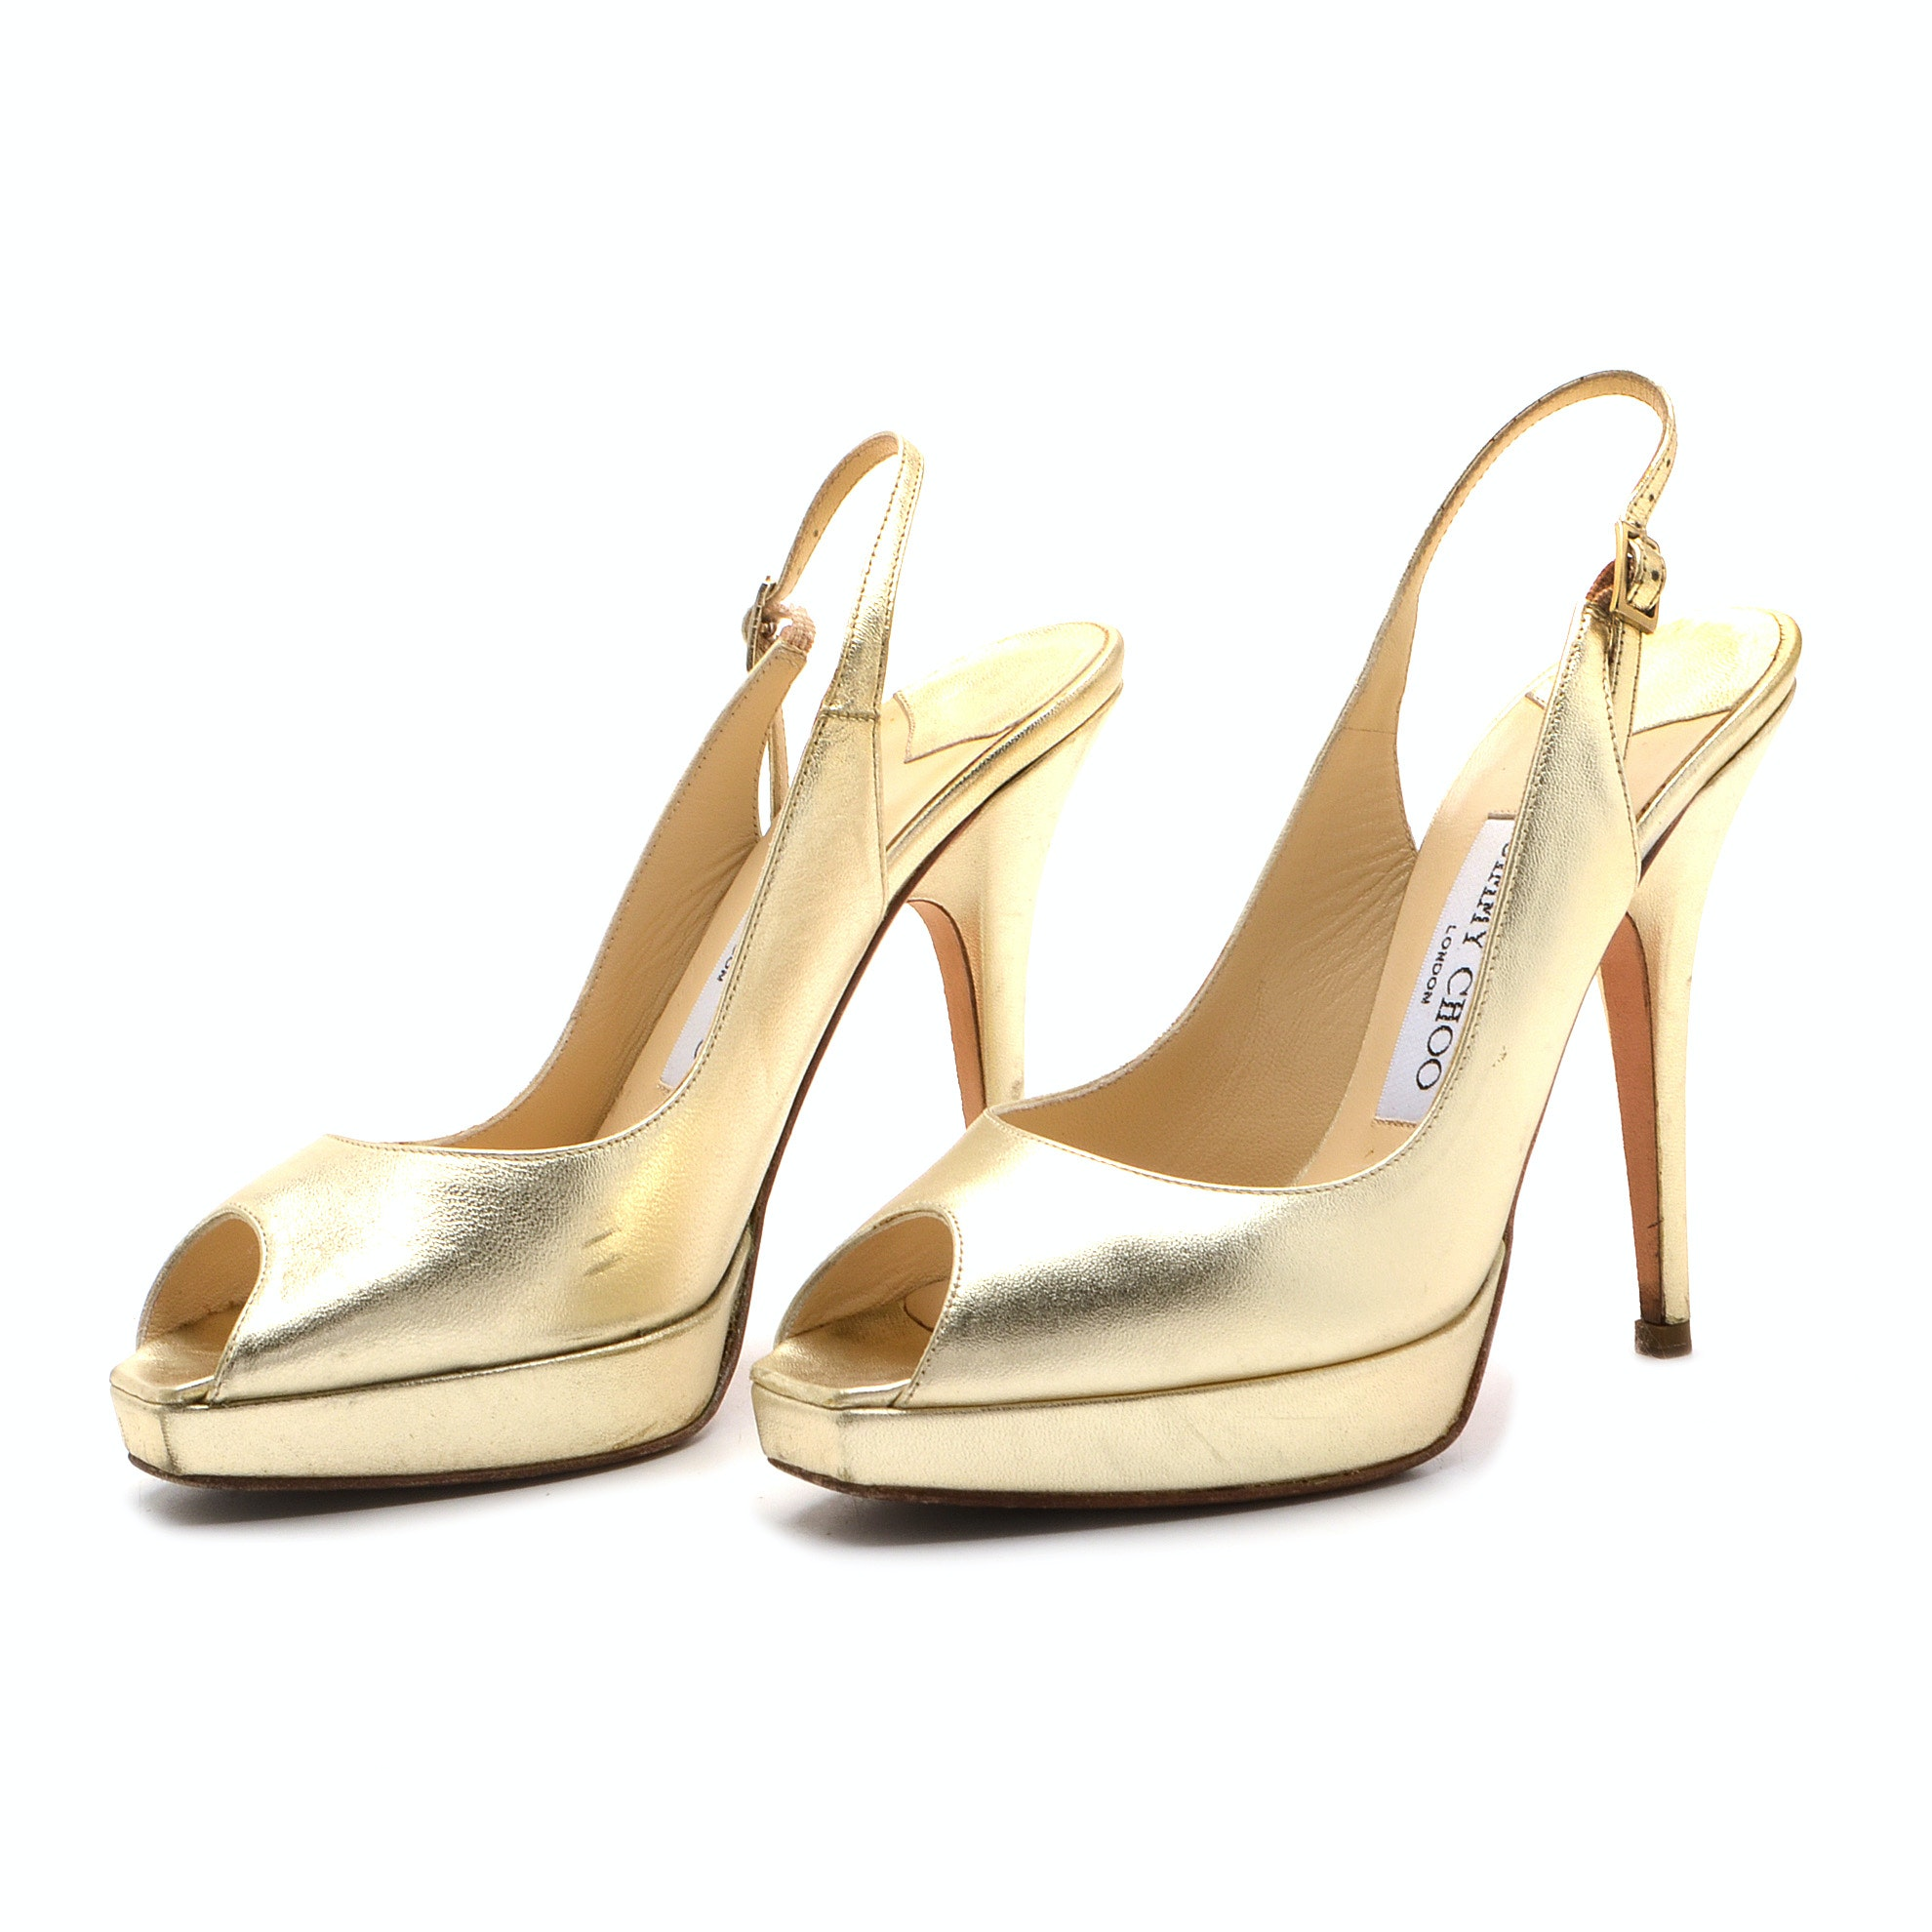 Jimmy Choo of London Gold Metallic Platform Peep Toe Slingbacks